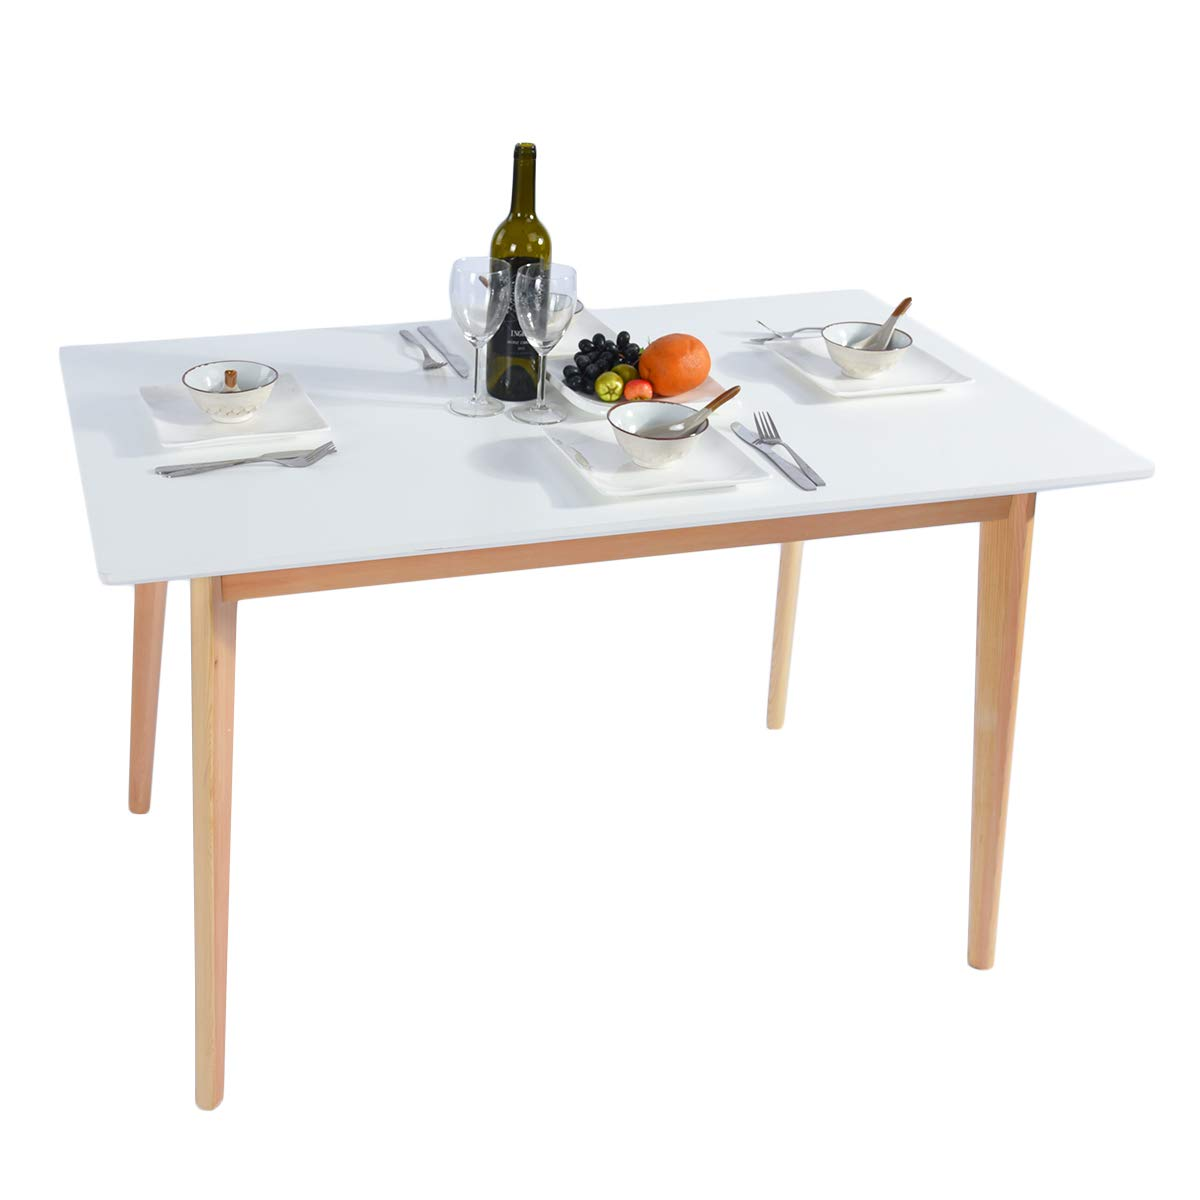 GreenForest Dining Table Mid Century Modern Rectangular Kitchen Leisure Table with Solid Wooden Legs 47.2'' x 27.6''x 30'', White by GreenForest (Image #1)